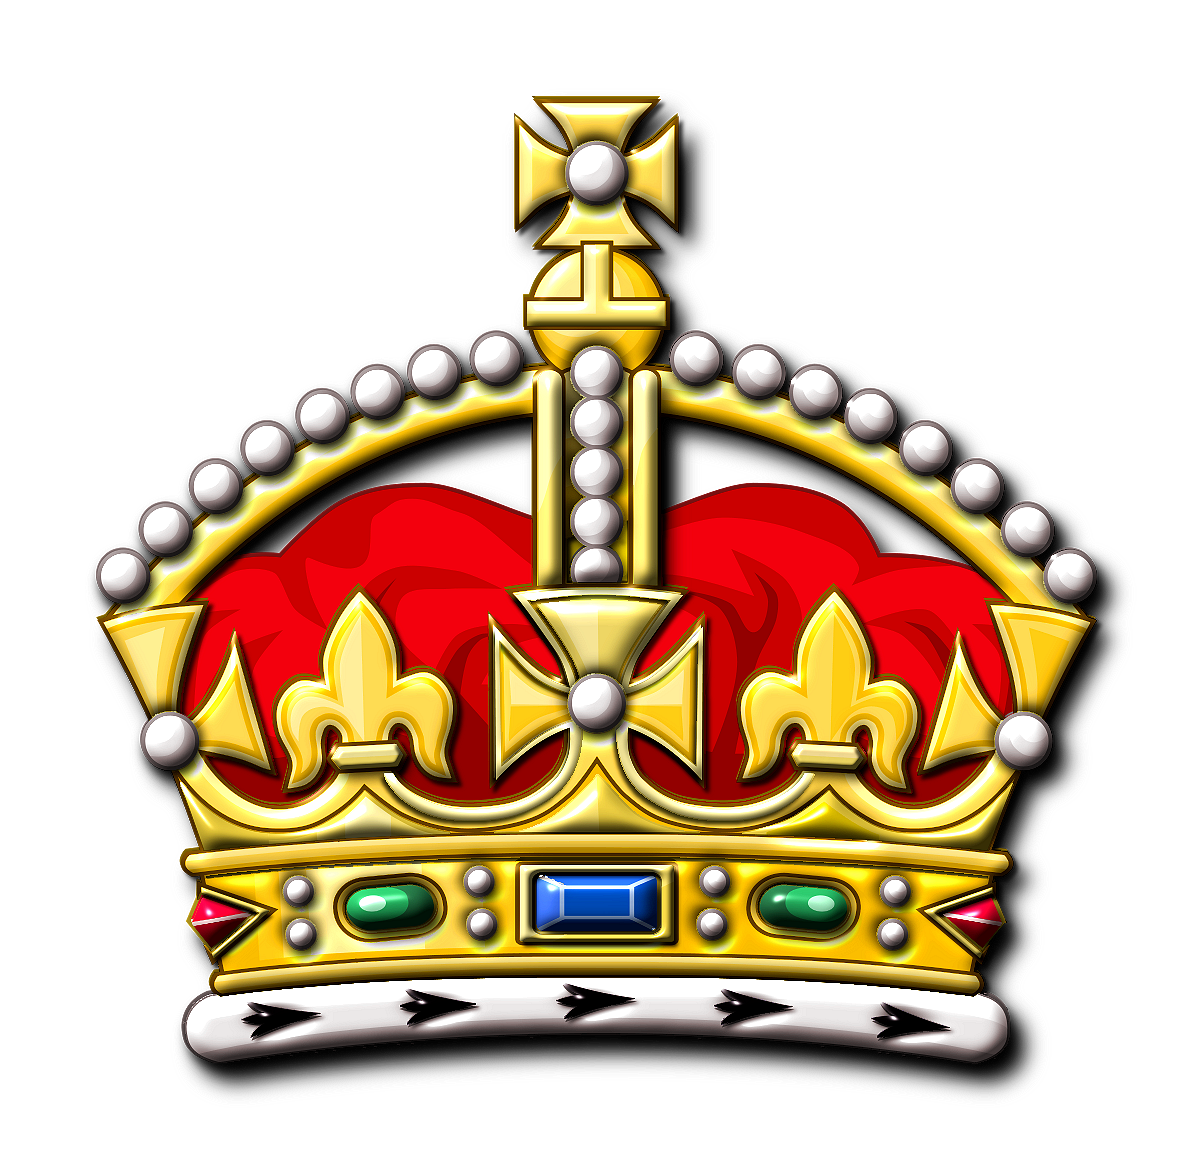 Kings Crown Pics - Cliparts.co